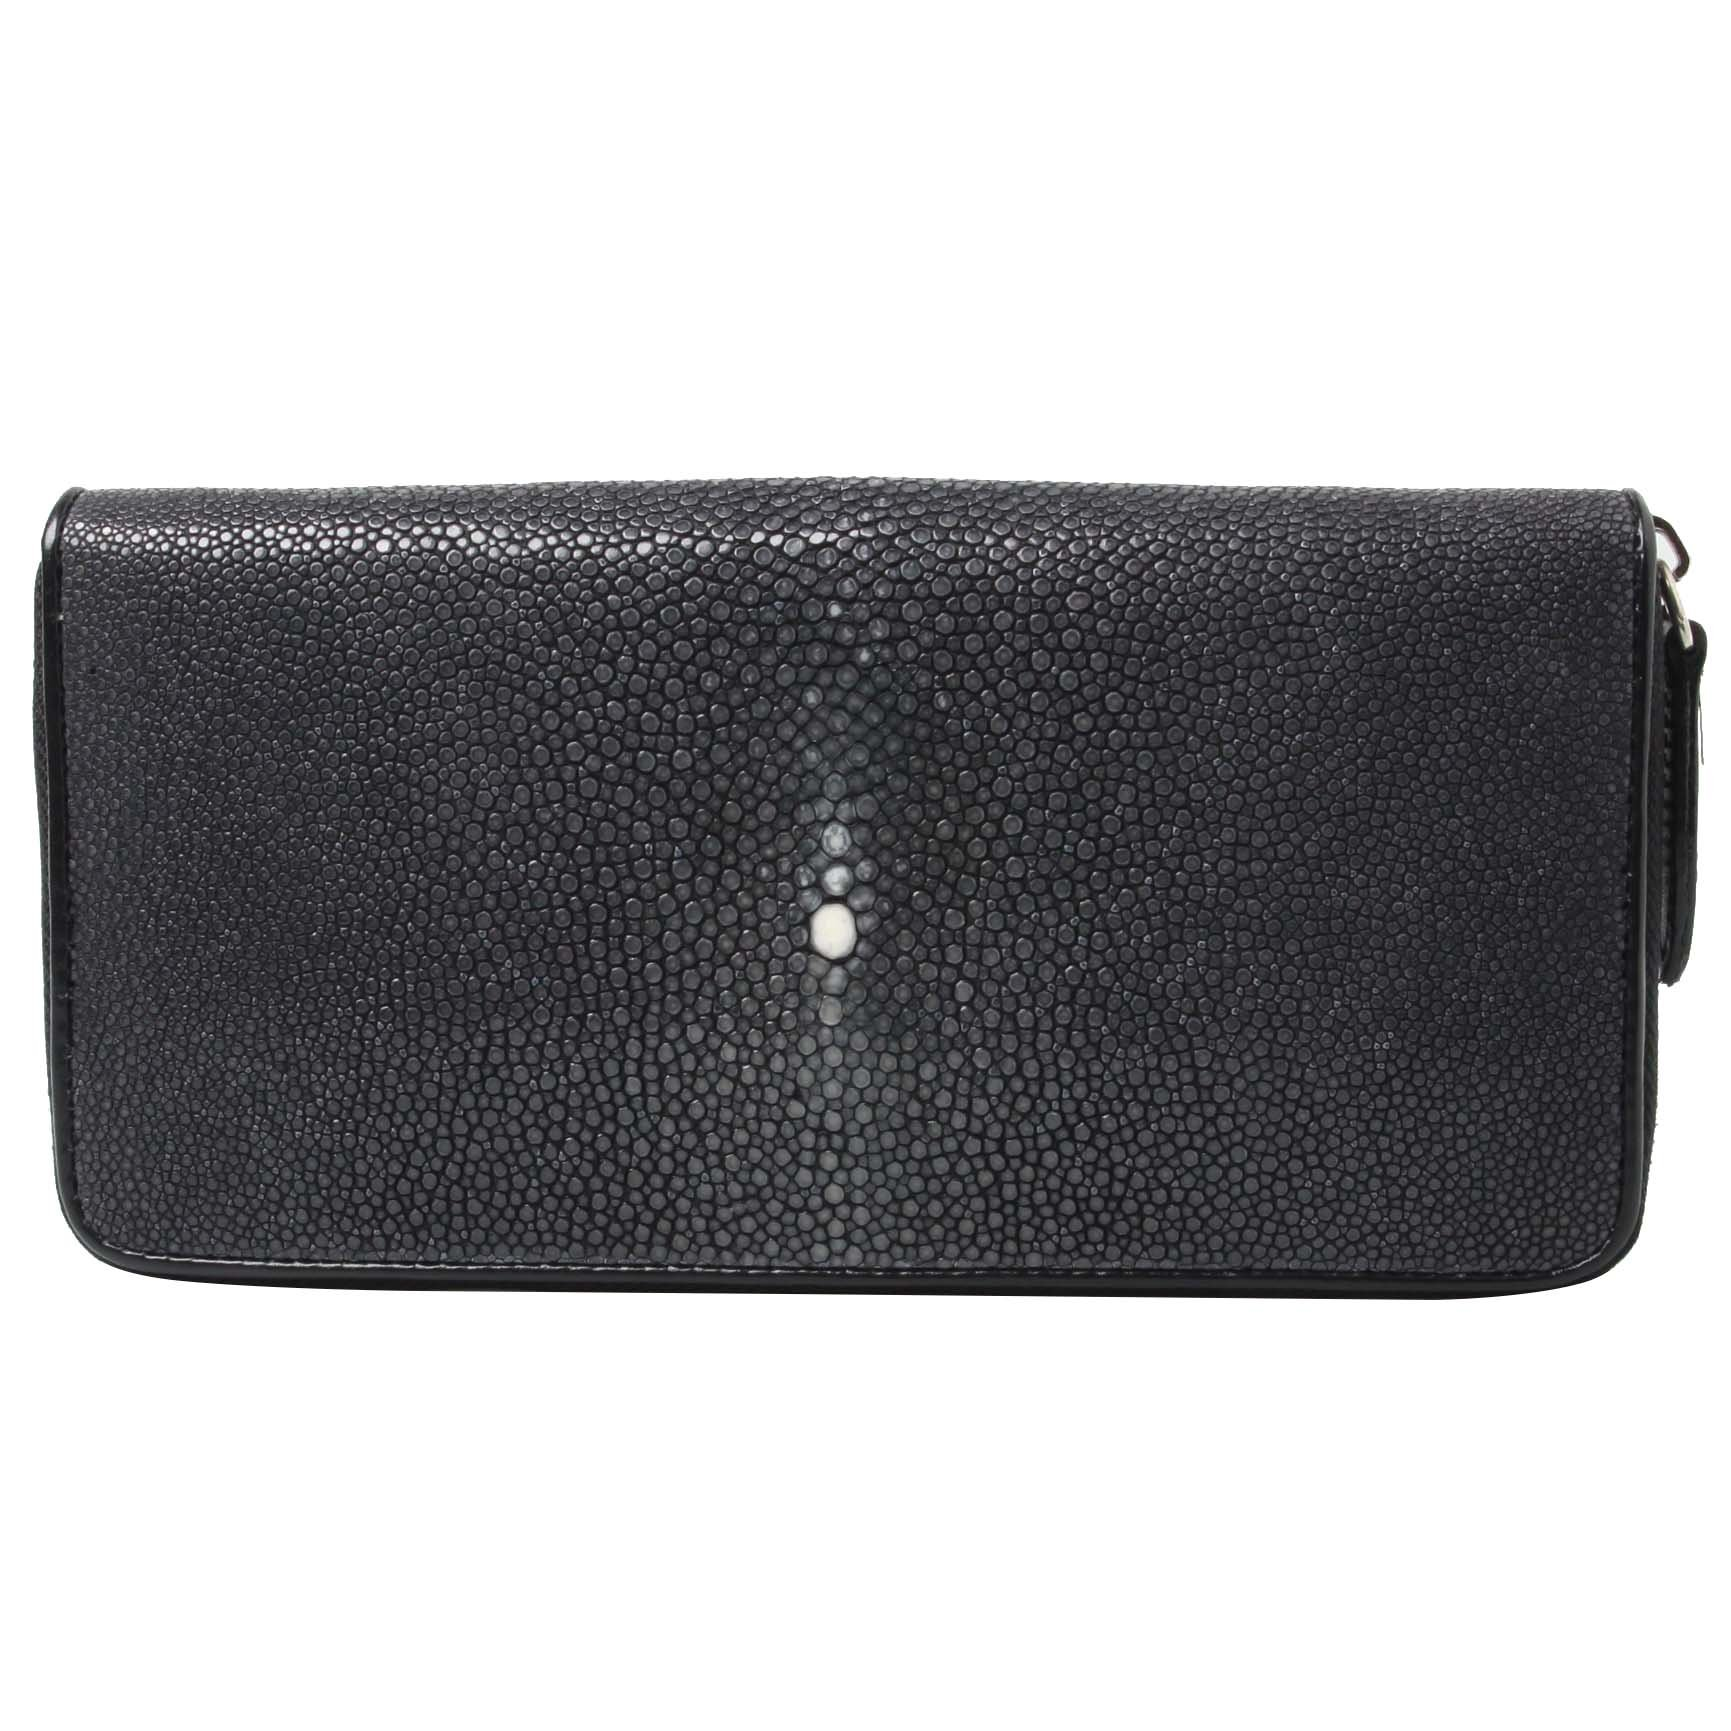 Genuine Polished Stingray Leather Black Clutch Women Zip Around Coin Wallet Purse